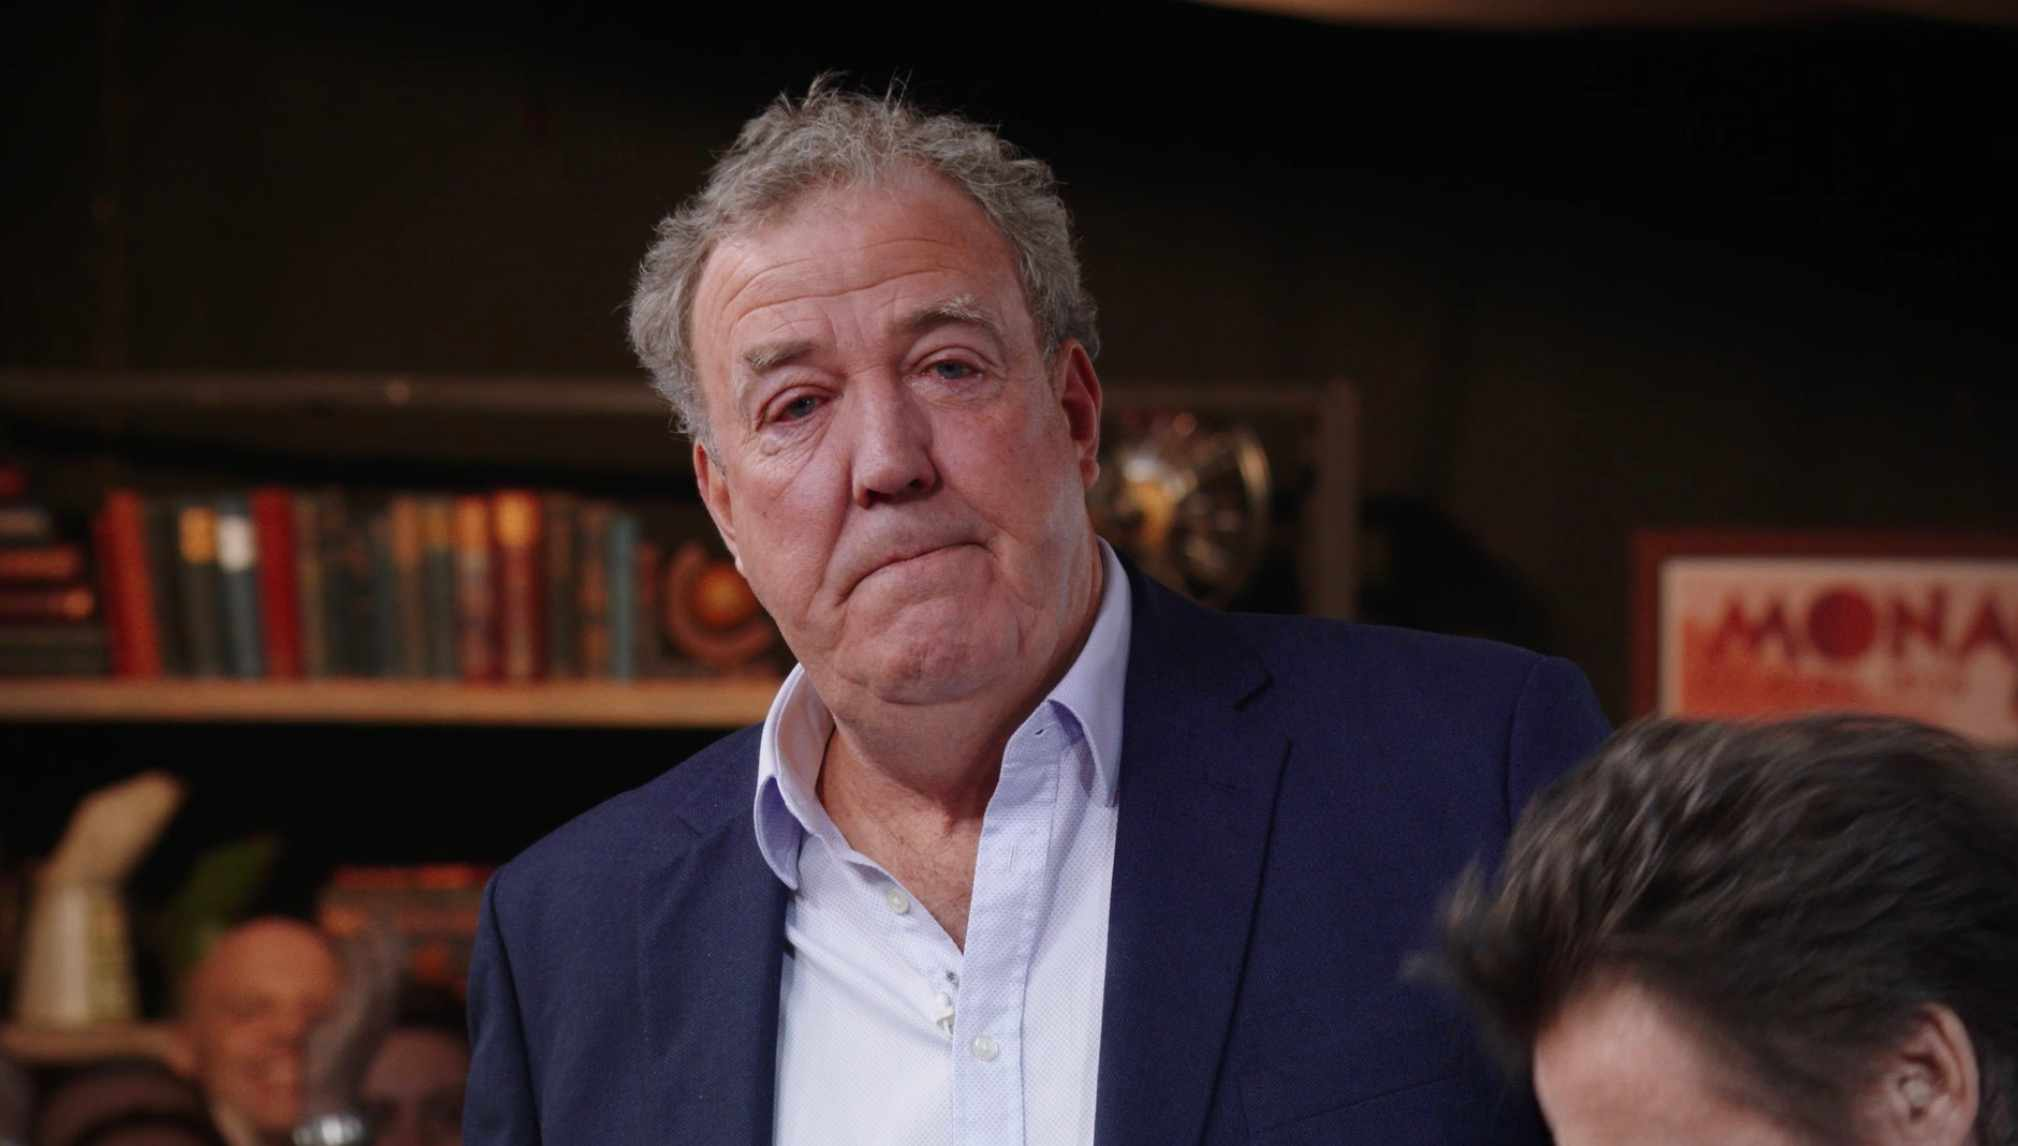 Jeremy Clarkson is visibly emotional during final studio recording of The Grand Tour (Amazon)